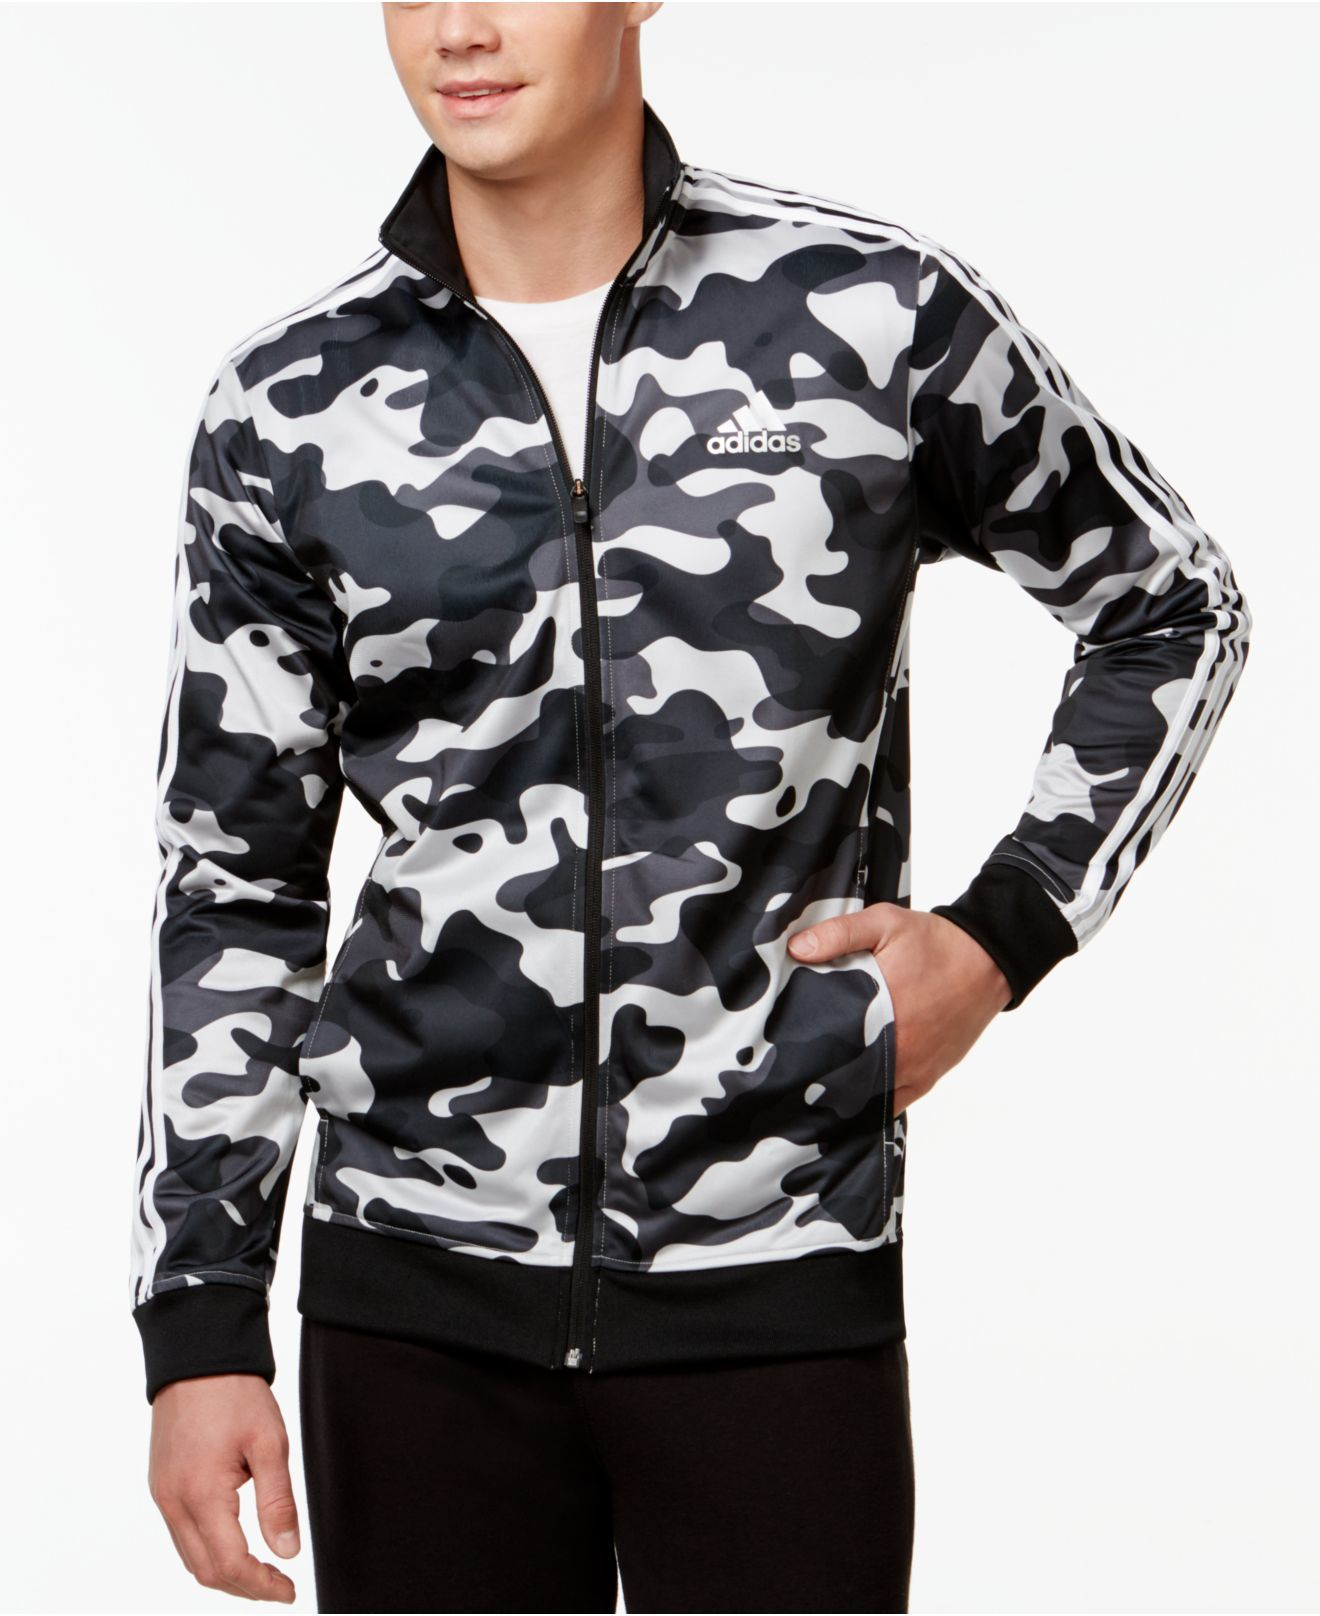 329d4dbc1362 Adidas originals Men s Camo Print Track Jacket in Gray for Men